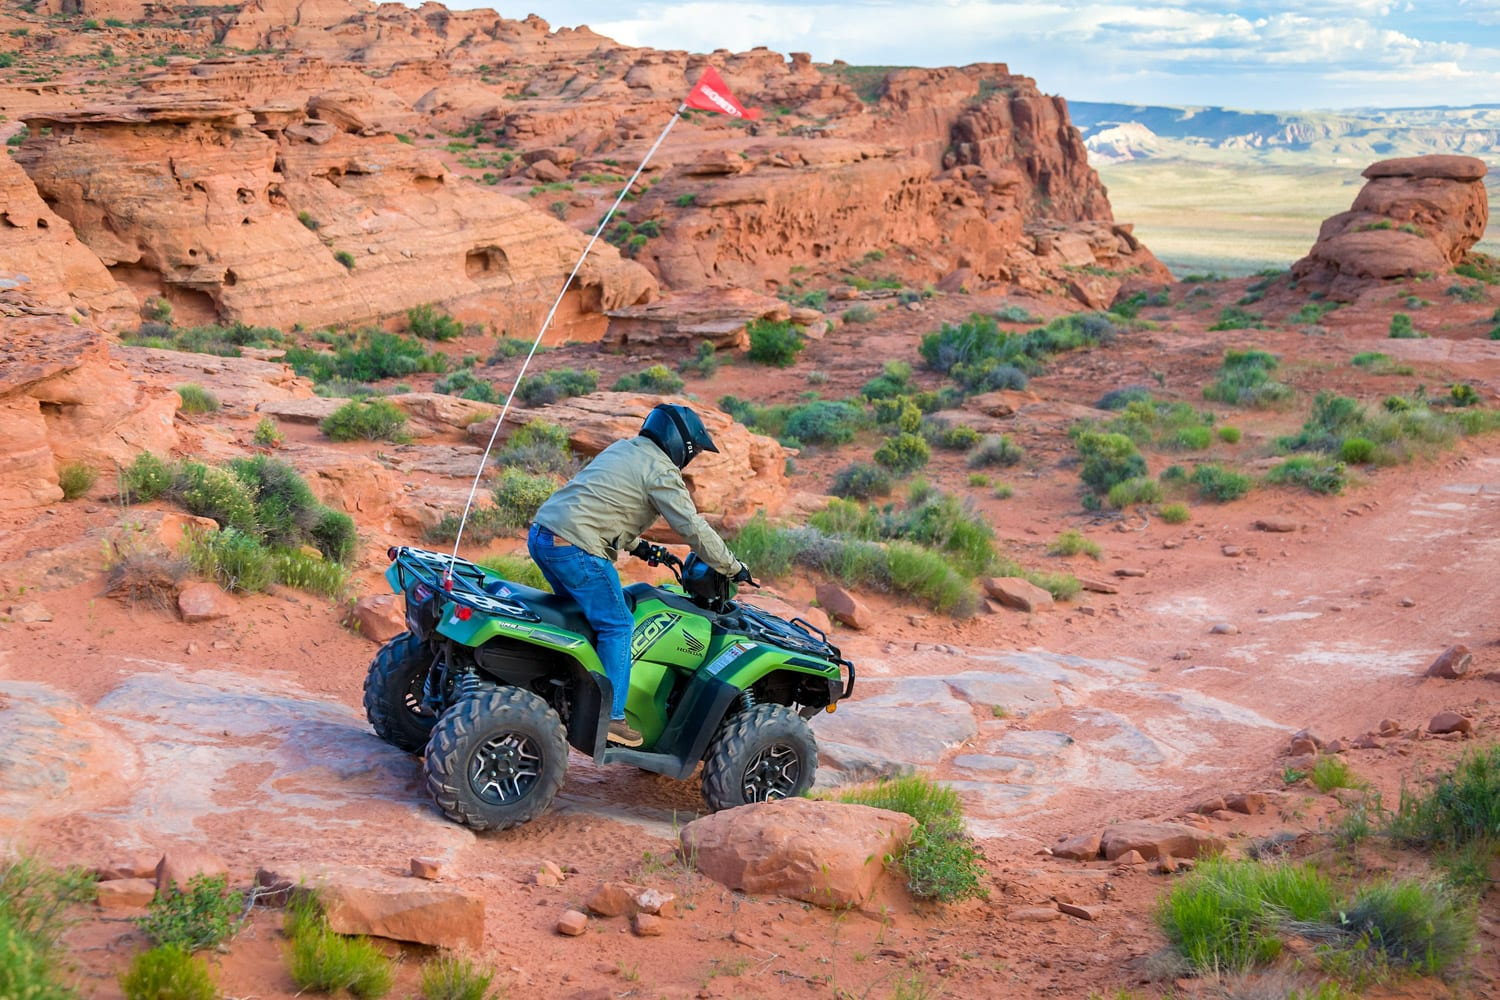 Top 5 Best ATVs for 2021